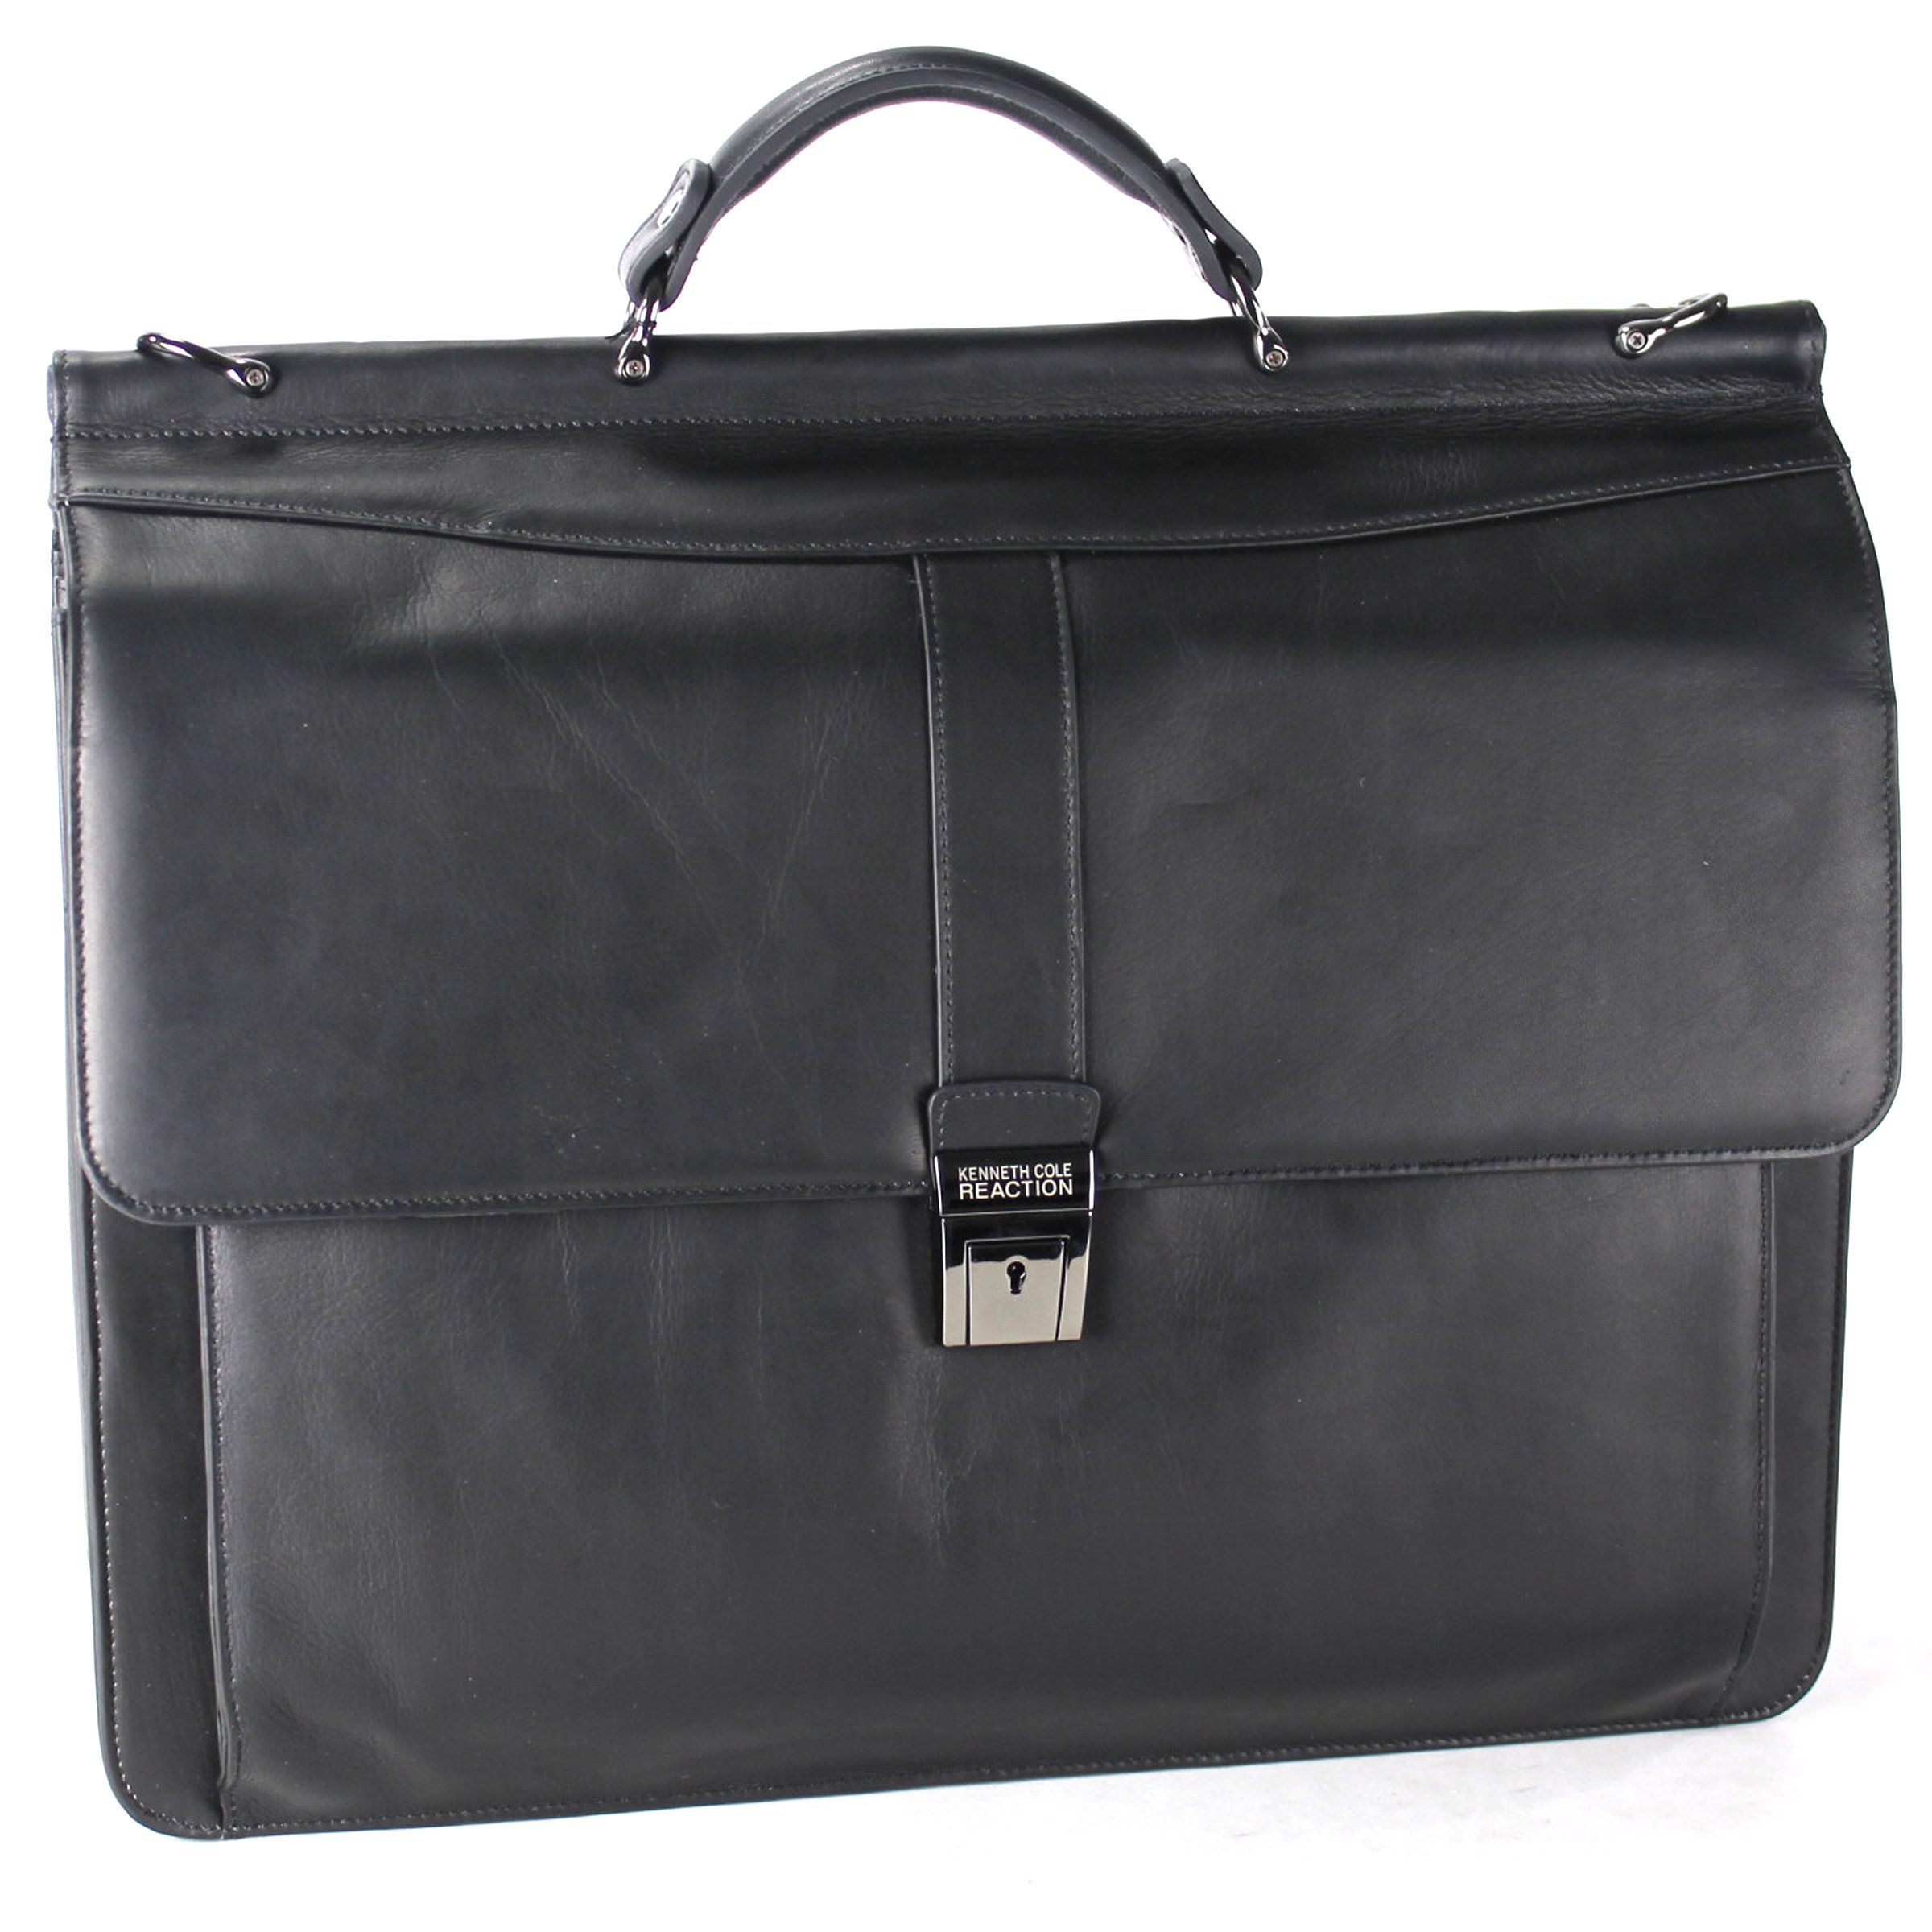 Kenneth Cole Reaction Rod Light Colombian Dowelrod Computer Ipad Business Case, Black, One Size by Kenneth Cole REACTION